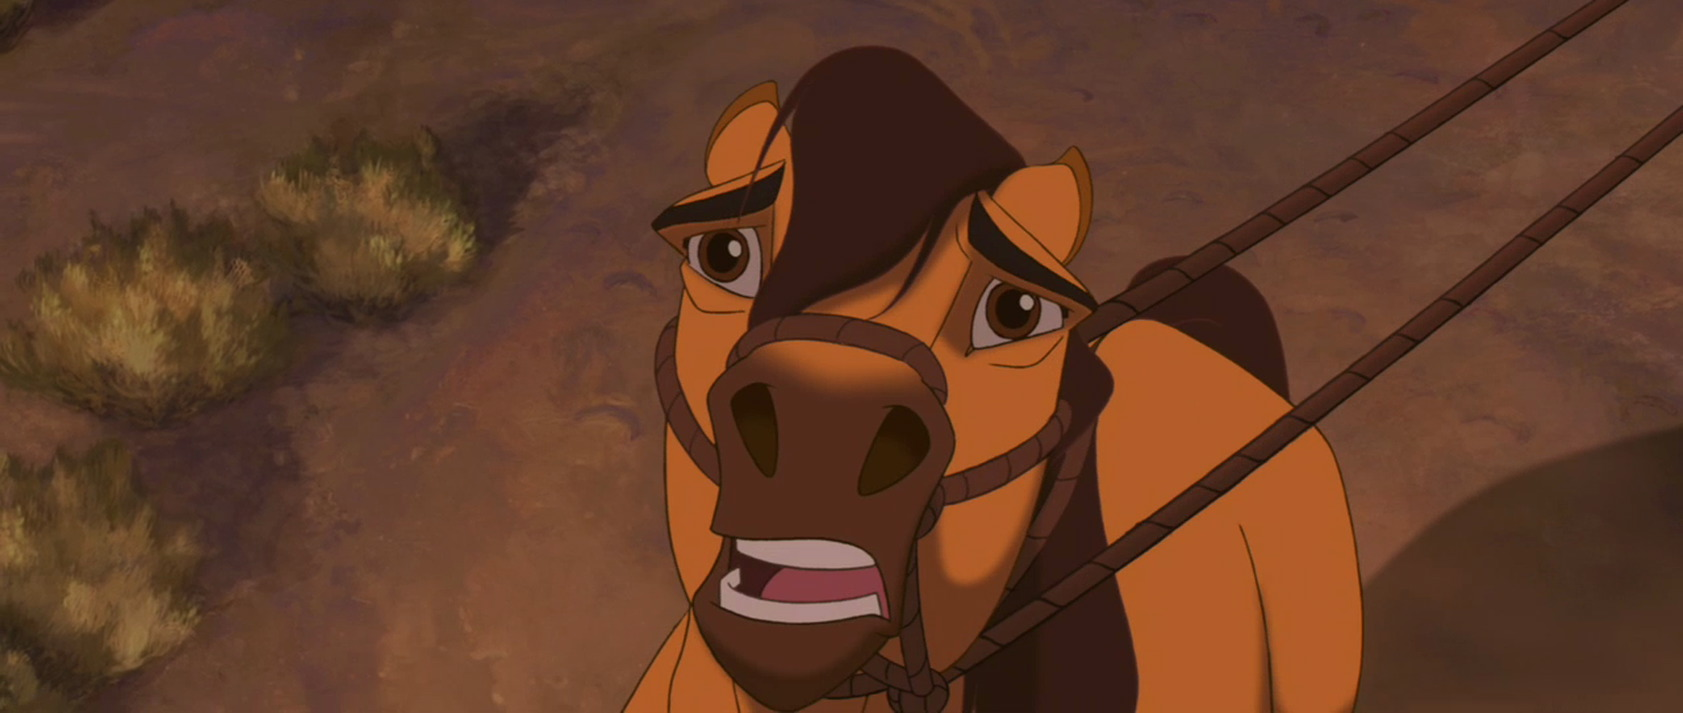 spirit-stallion-disneyscreencaps.com-2179.jpg